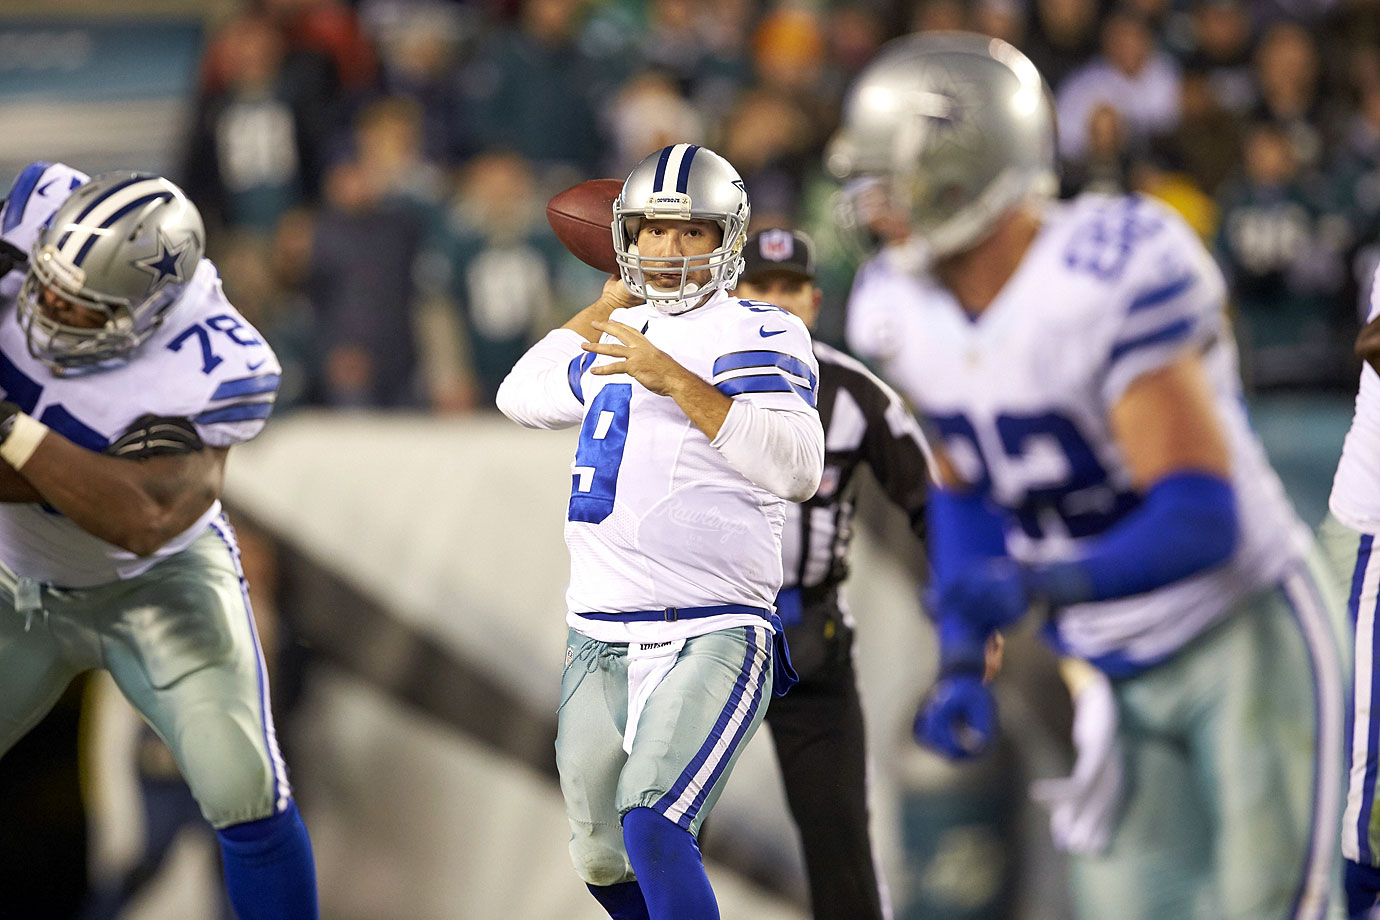 Romo has reduced the tendencies that once made him a boom-or-bust player. He's improved his interception rates over the last few seasons without losing his knack for the big play, which is how he led the NFL in 2014 in completion percentage (69.9%), touchdown percentage (7.8%), yards per attempt (8.5) and passer rating (113.2).